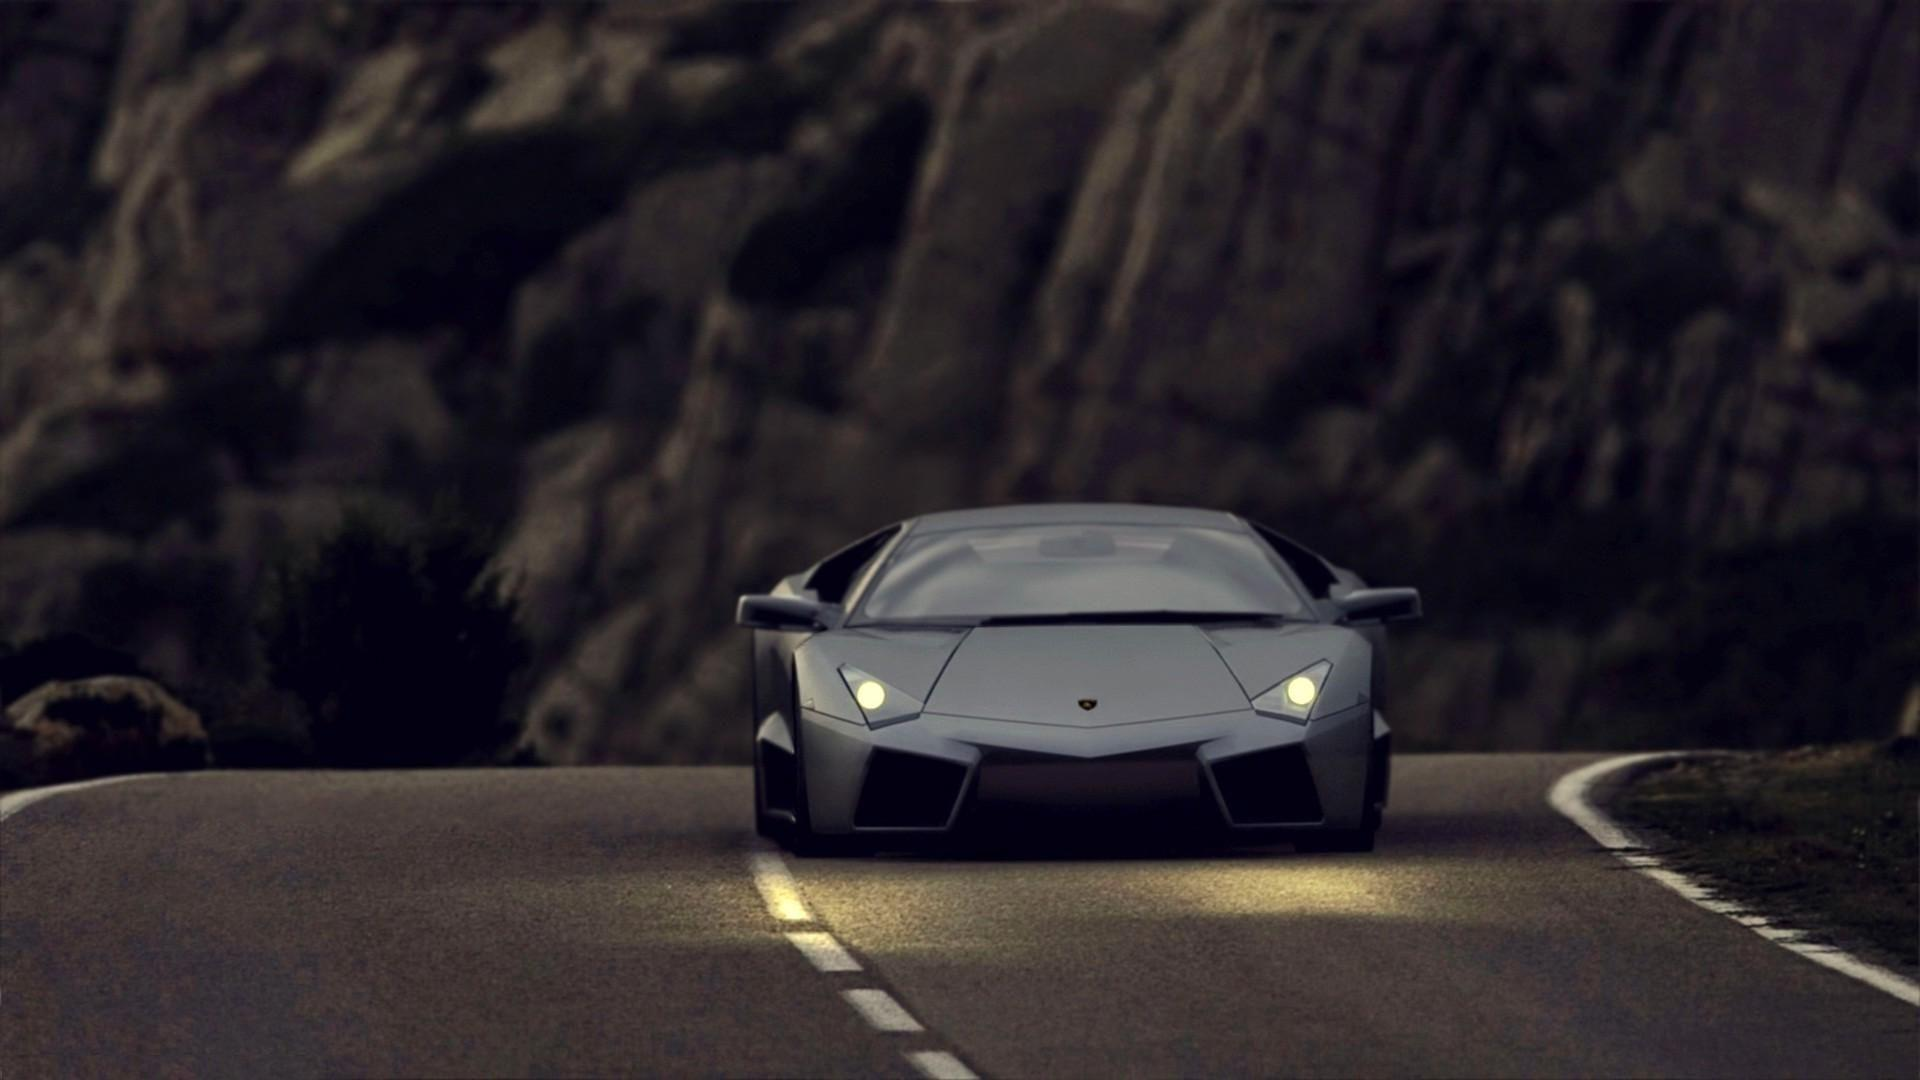 lamborghini reventon image wallpaper - photo #26